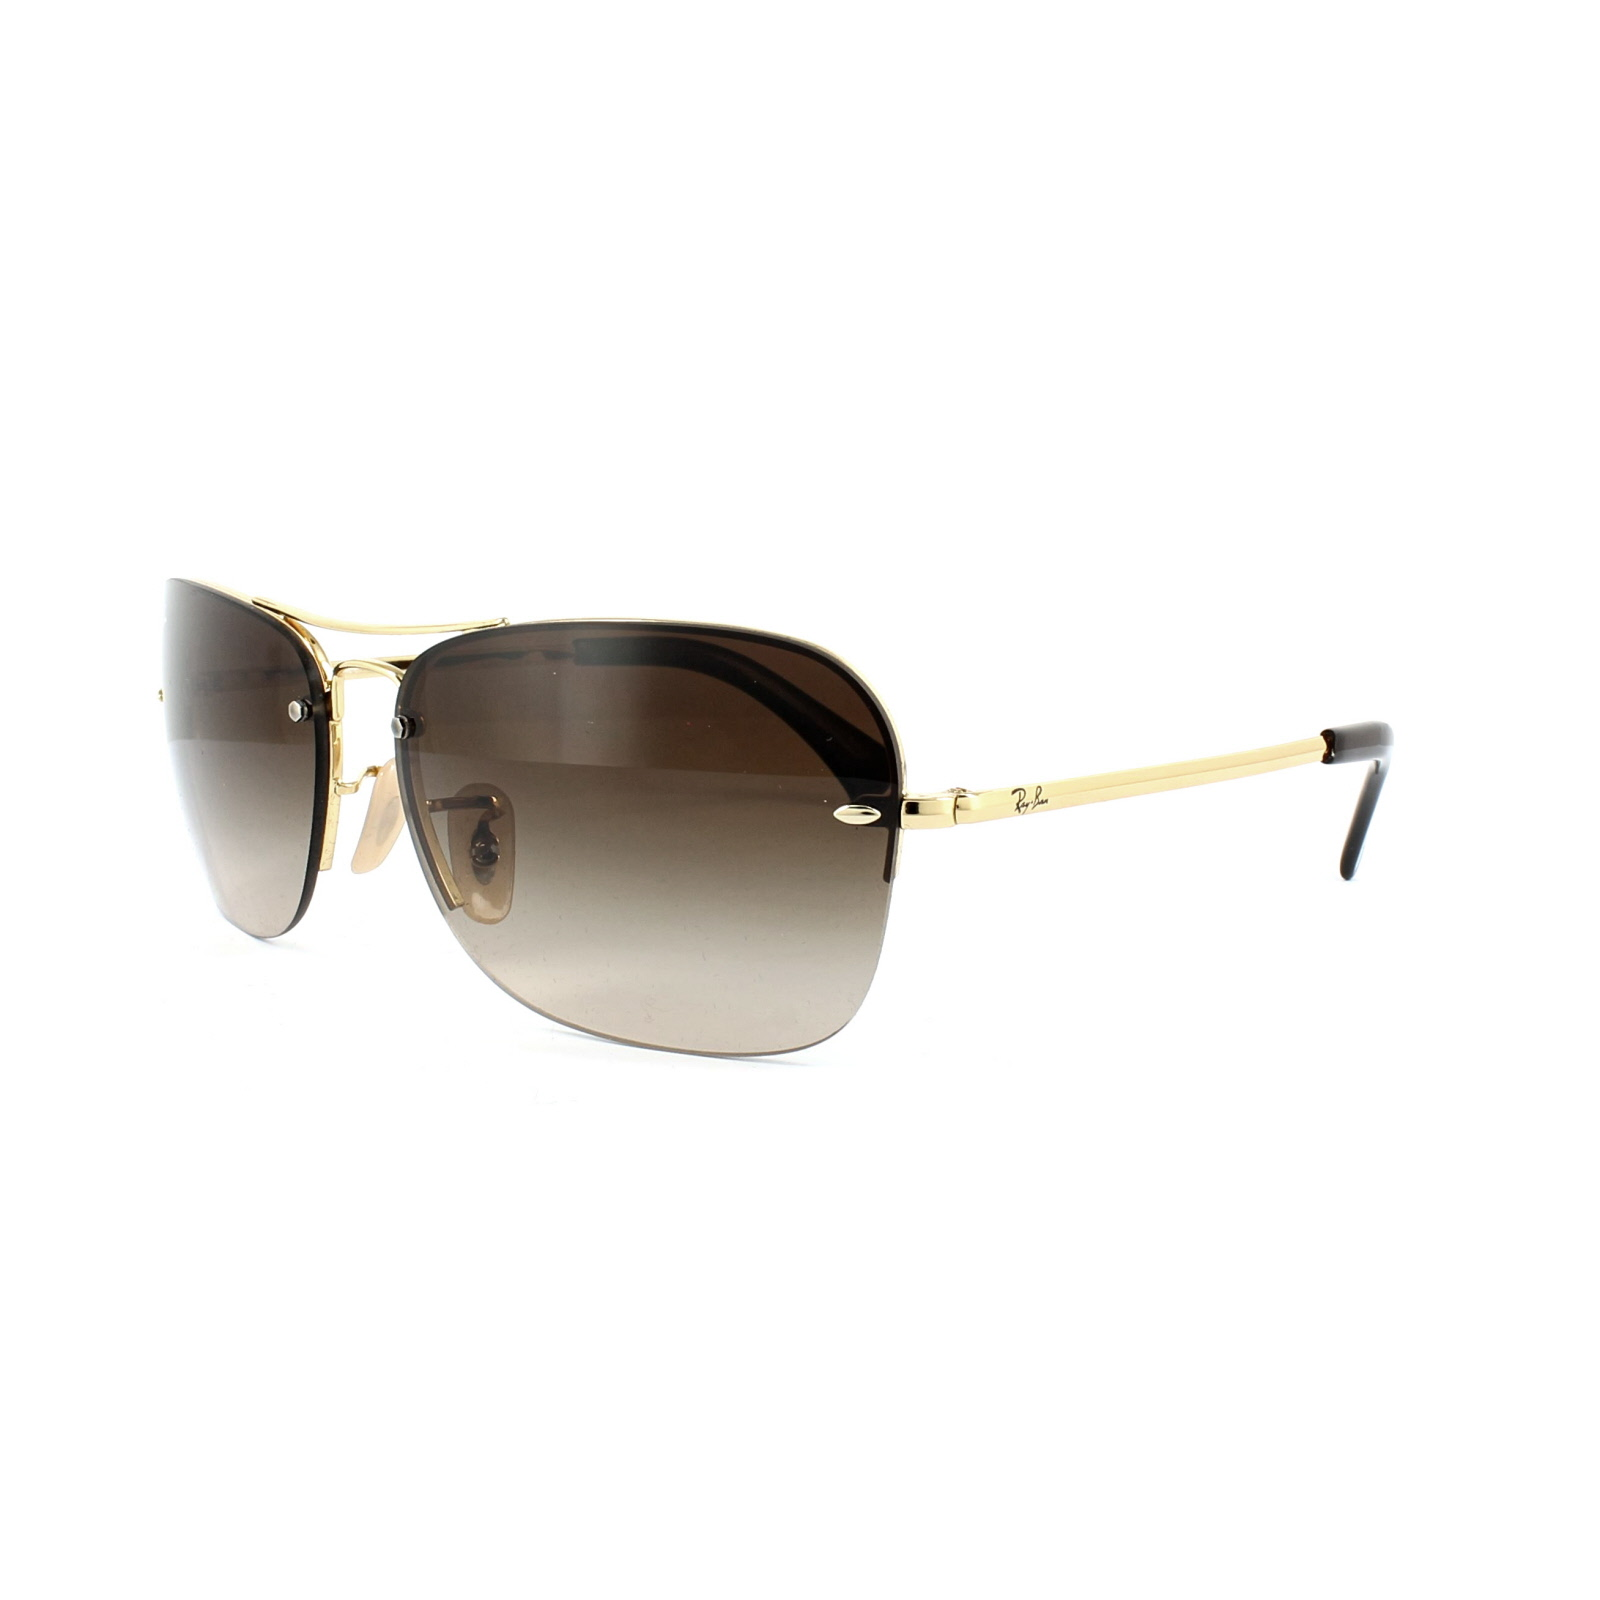 99006851fd6ce ... clearance sentinel ray ban sunglasses 3541 001 13 gold brown gradient  e2530 813e0